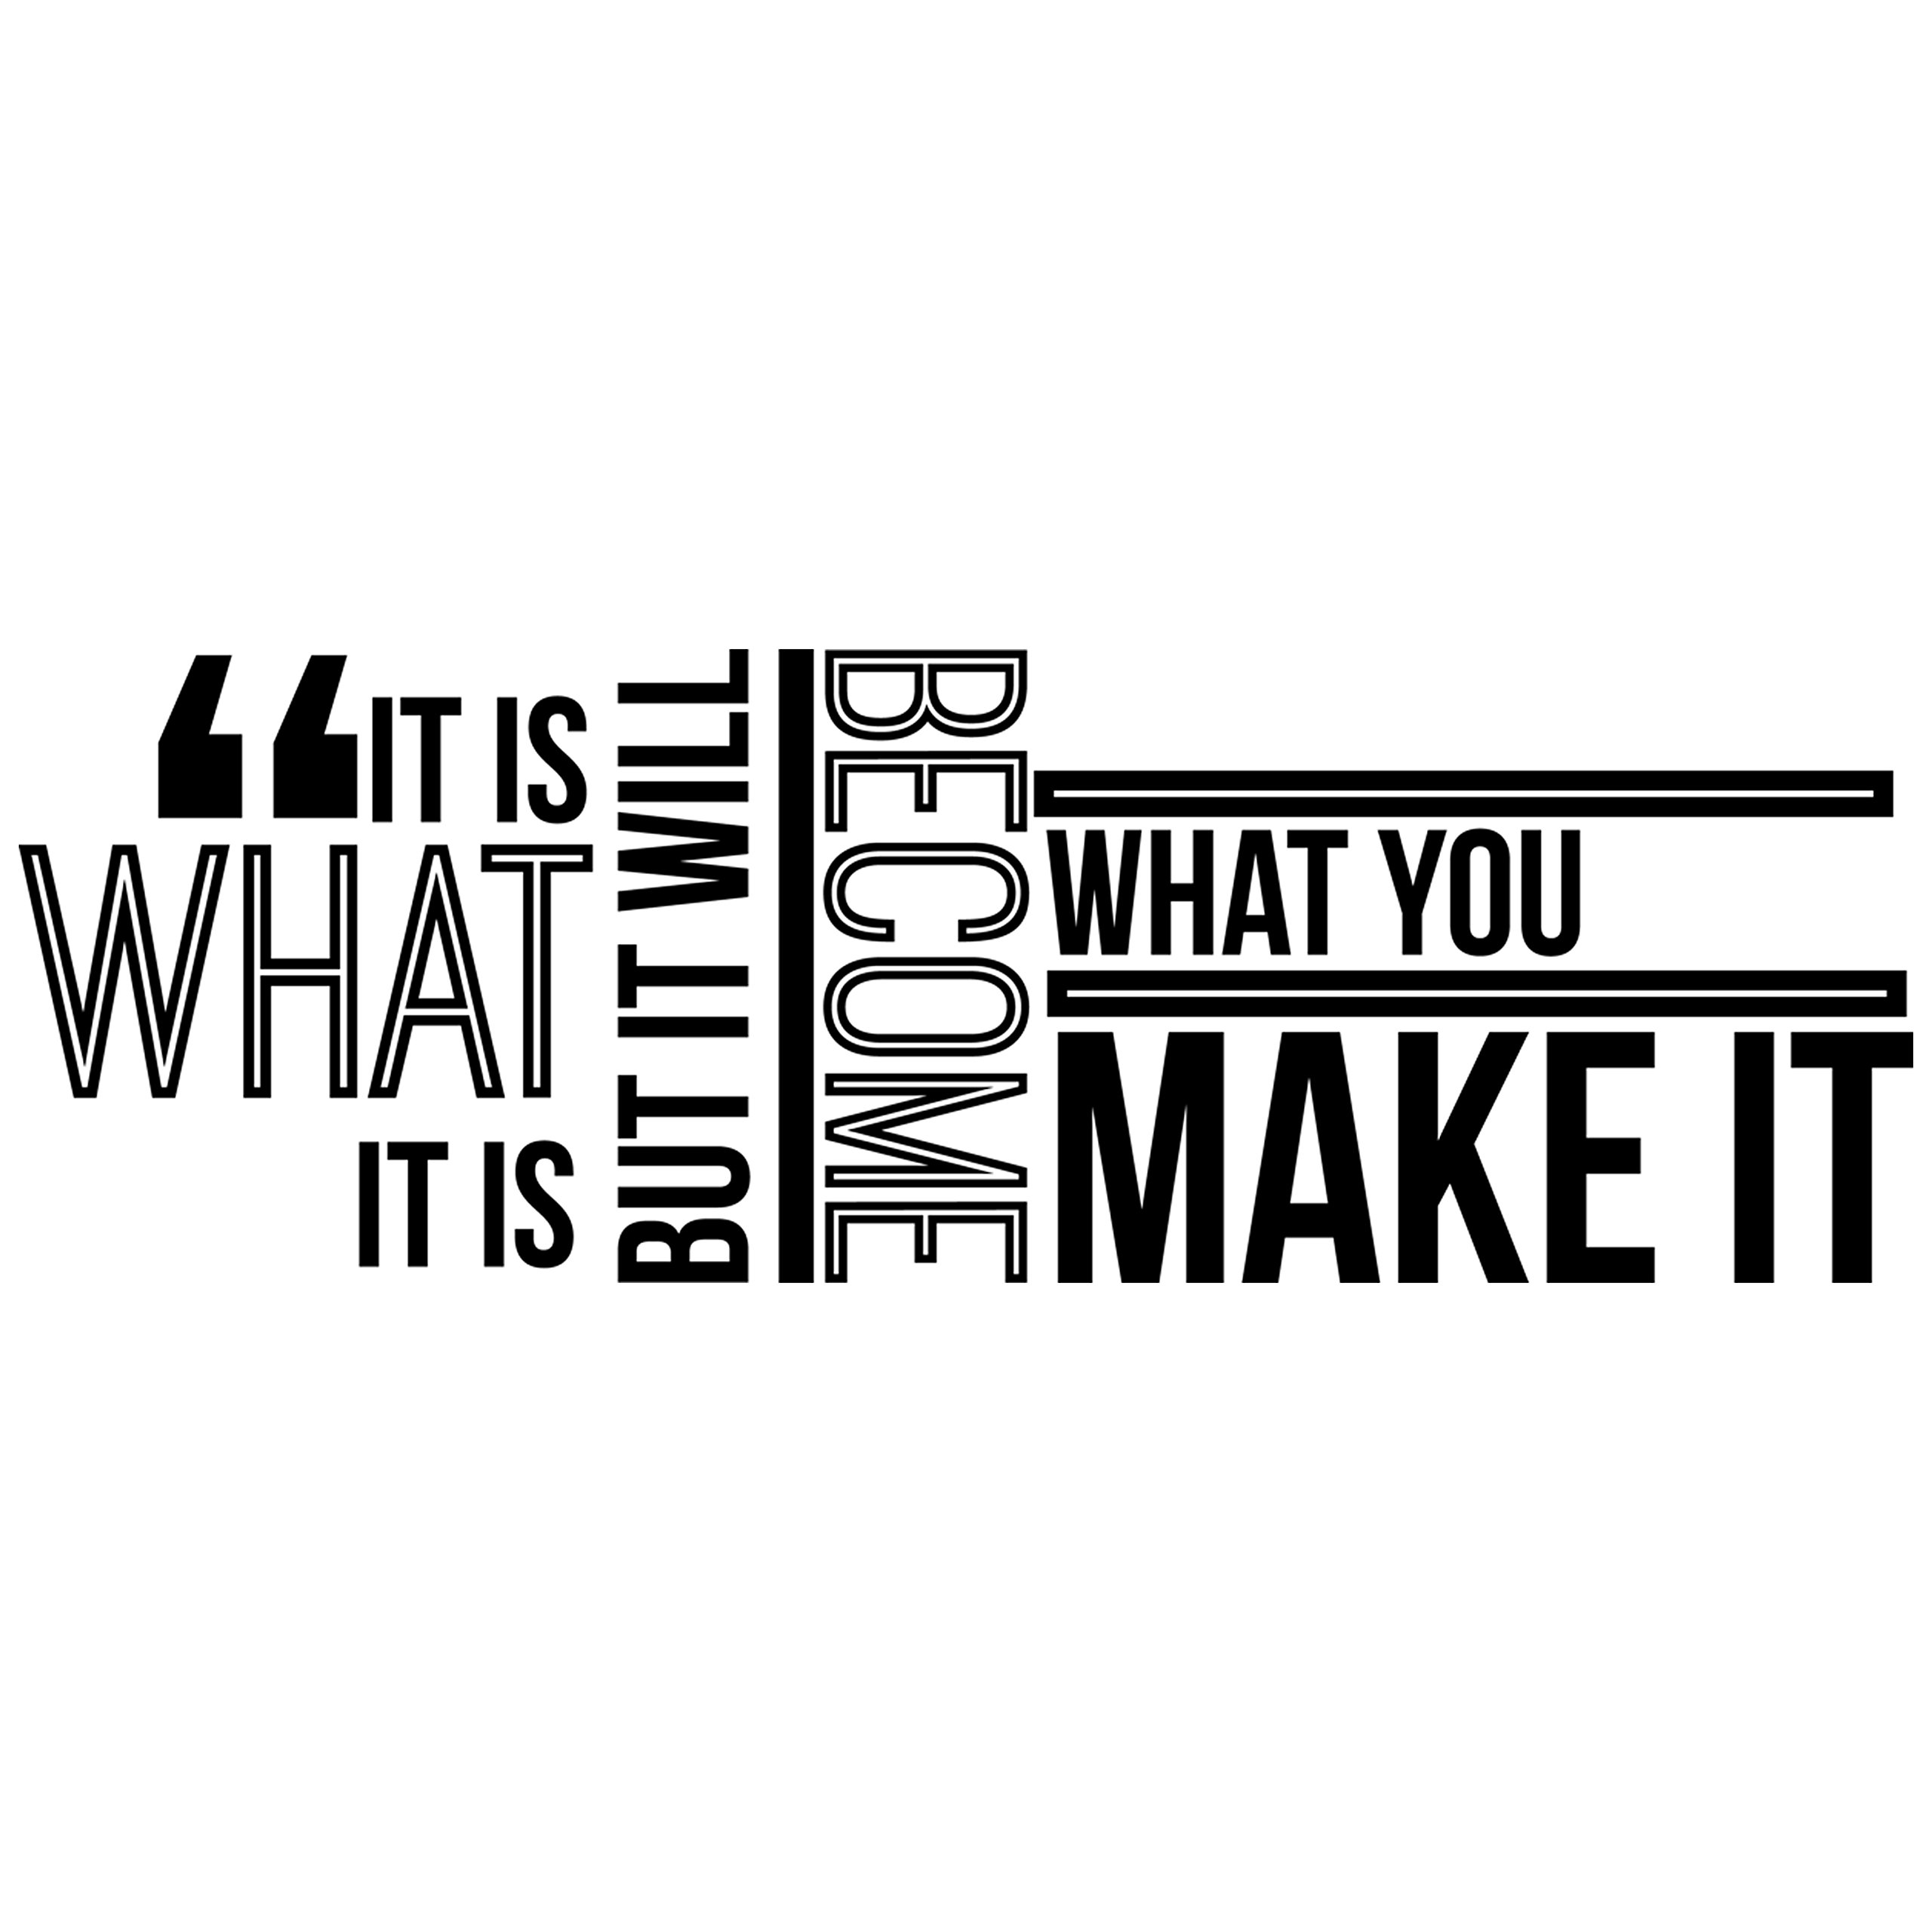 My Vinyl Story It is What it is Inspirational Wall Decal Quote for staying Inspired, Motivated, Focused, Positive, Motivational Office Wall Decor Wall Art Vinyl Wall Decal Words and Saying 42x15 In.